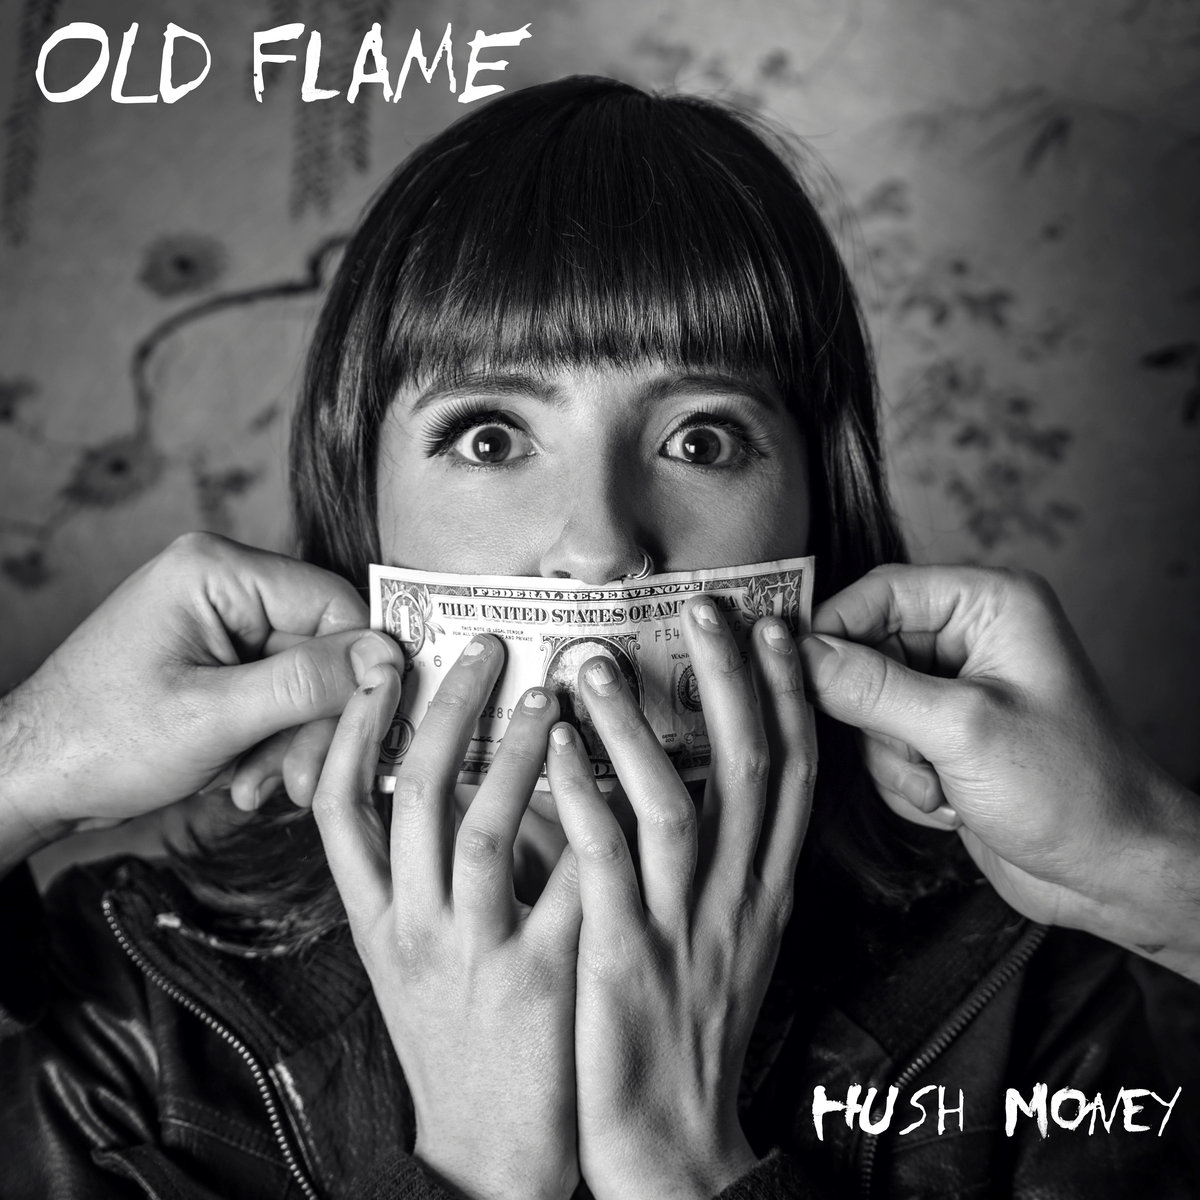 The CDs You Gave Me: 'Hush Money' is pure catharsis